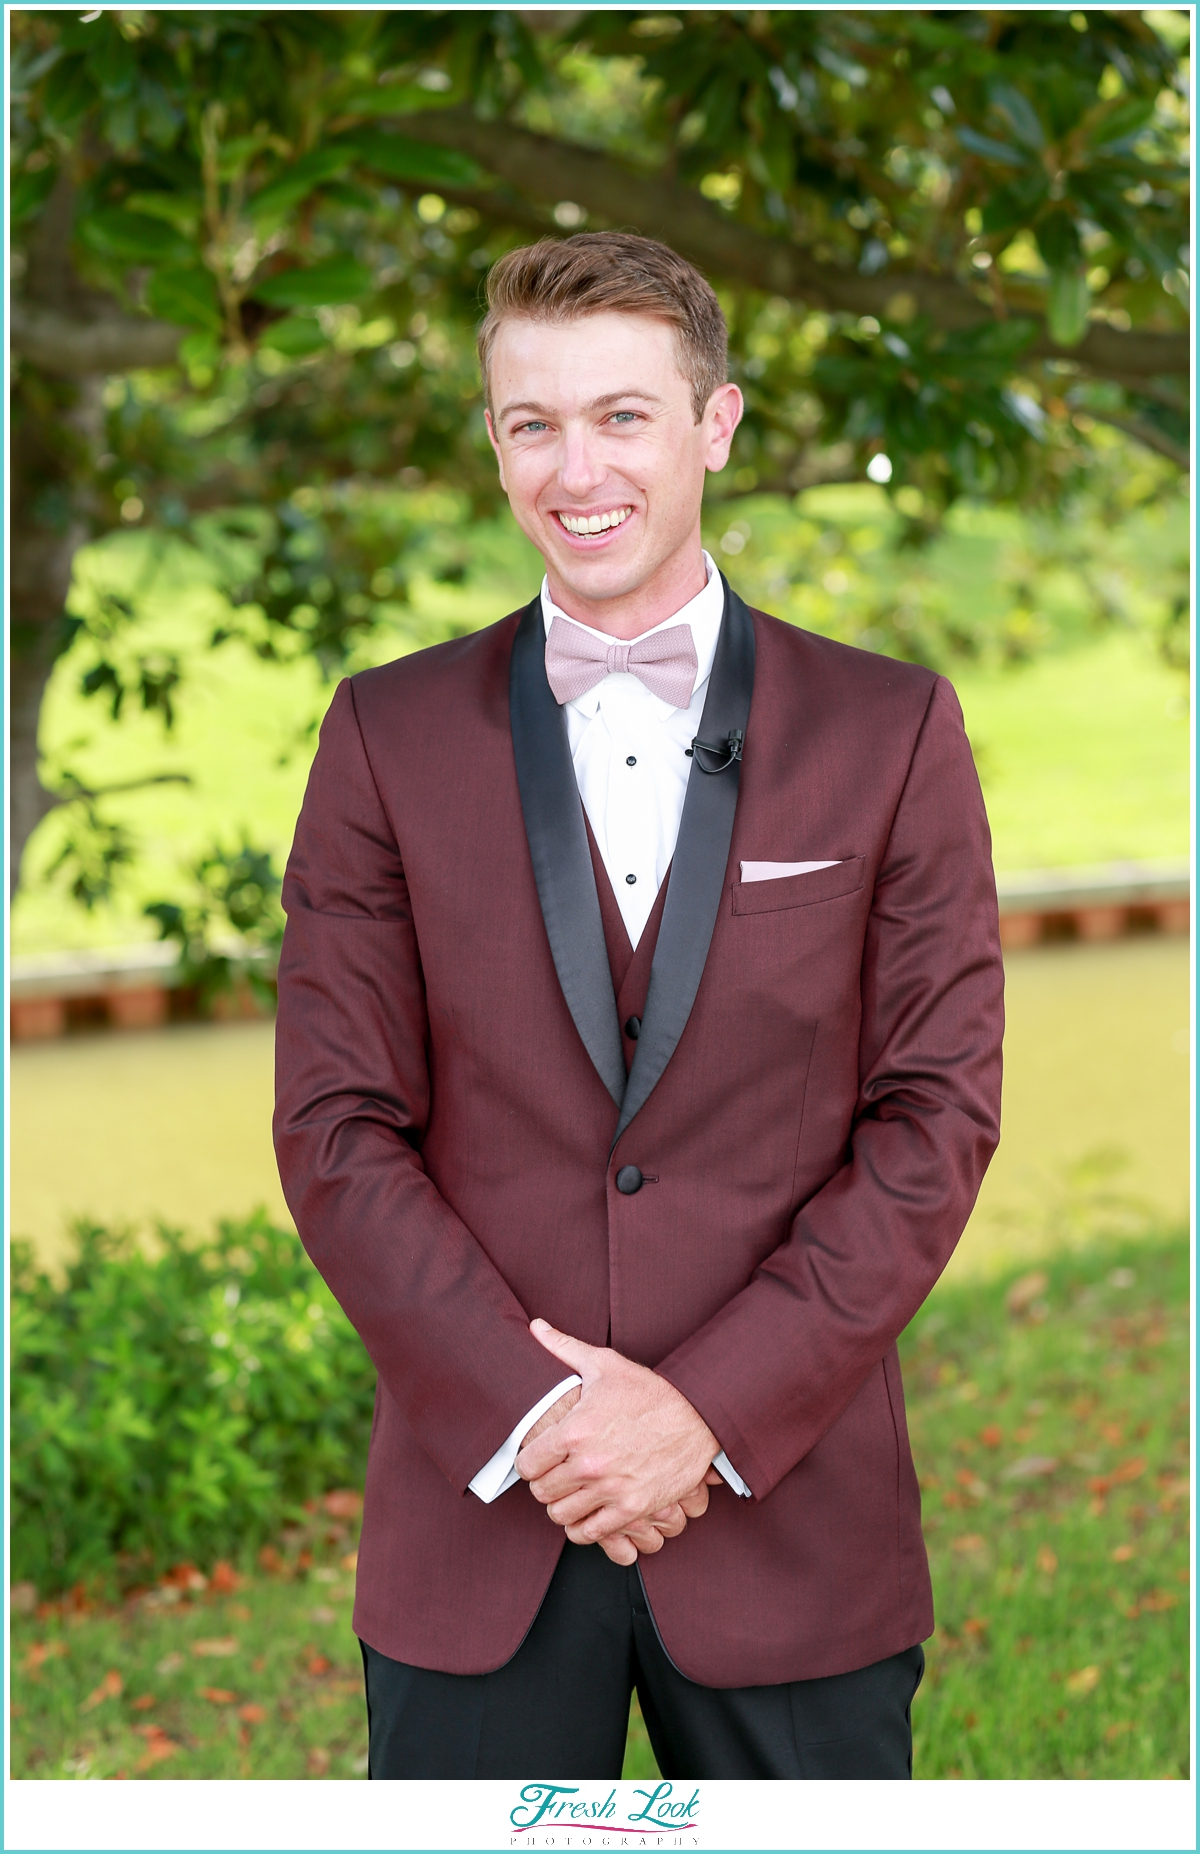 dapper groom at the wedding